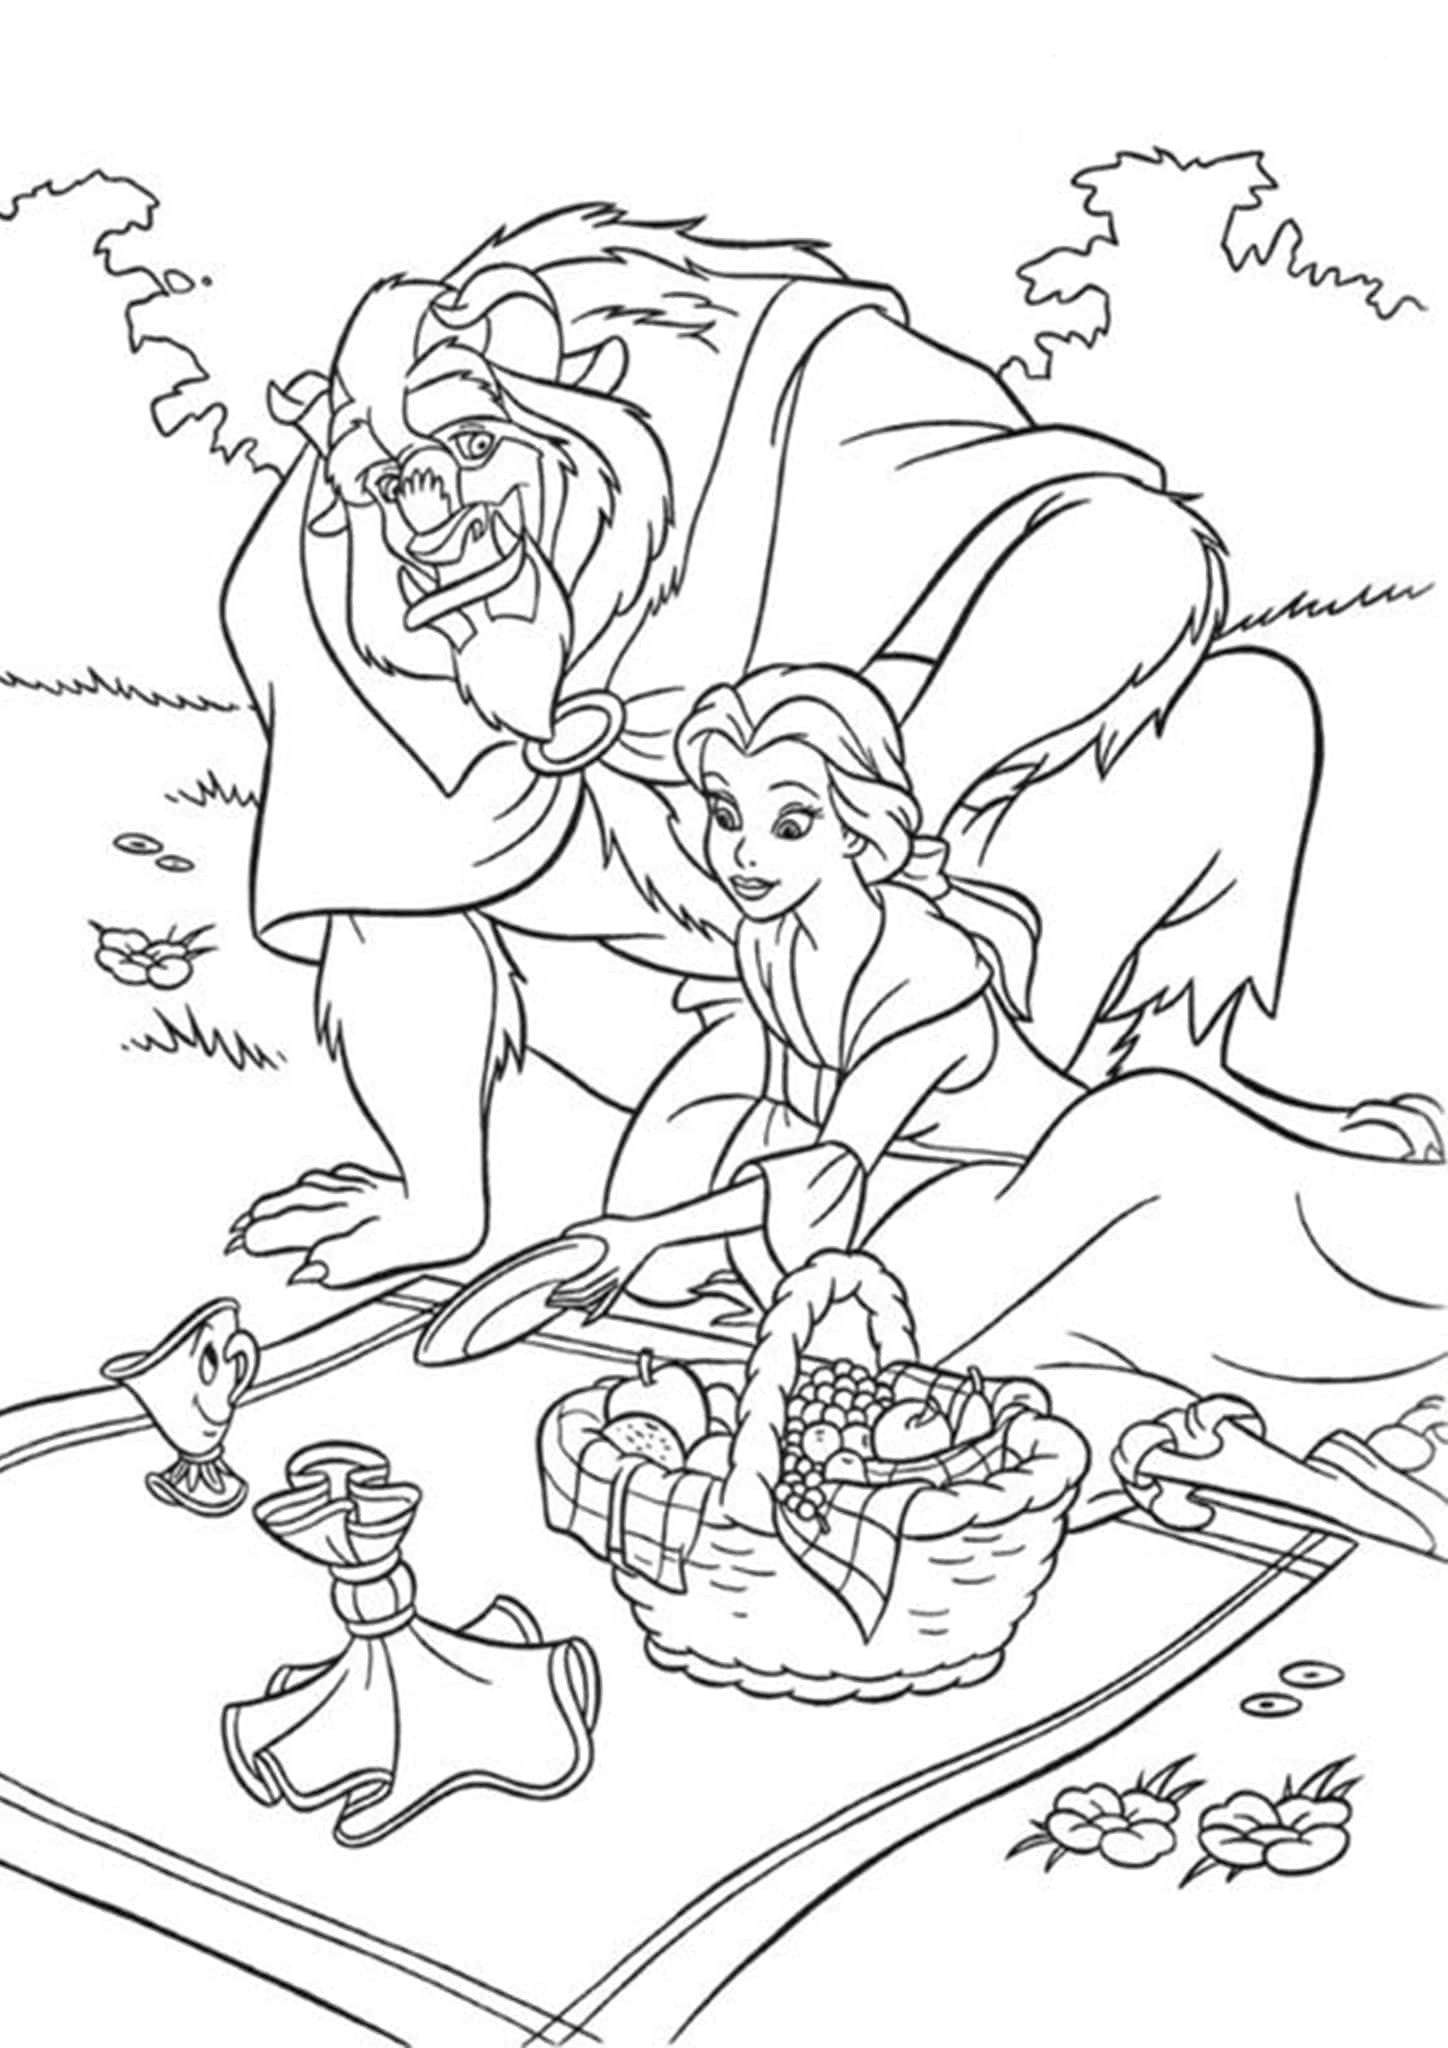 coloring pages beauty and the beast beauty and the beast coloring pages pages coloring beauty beast the and